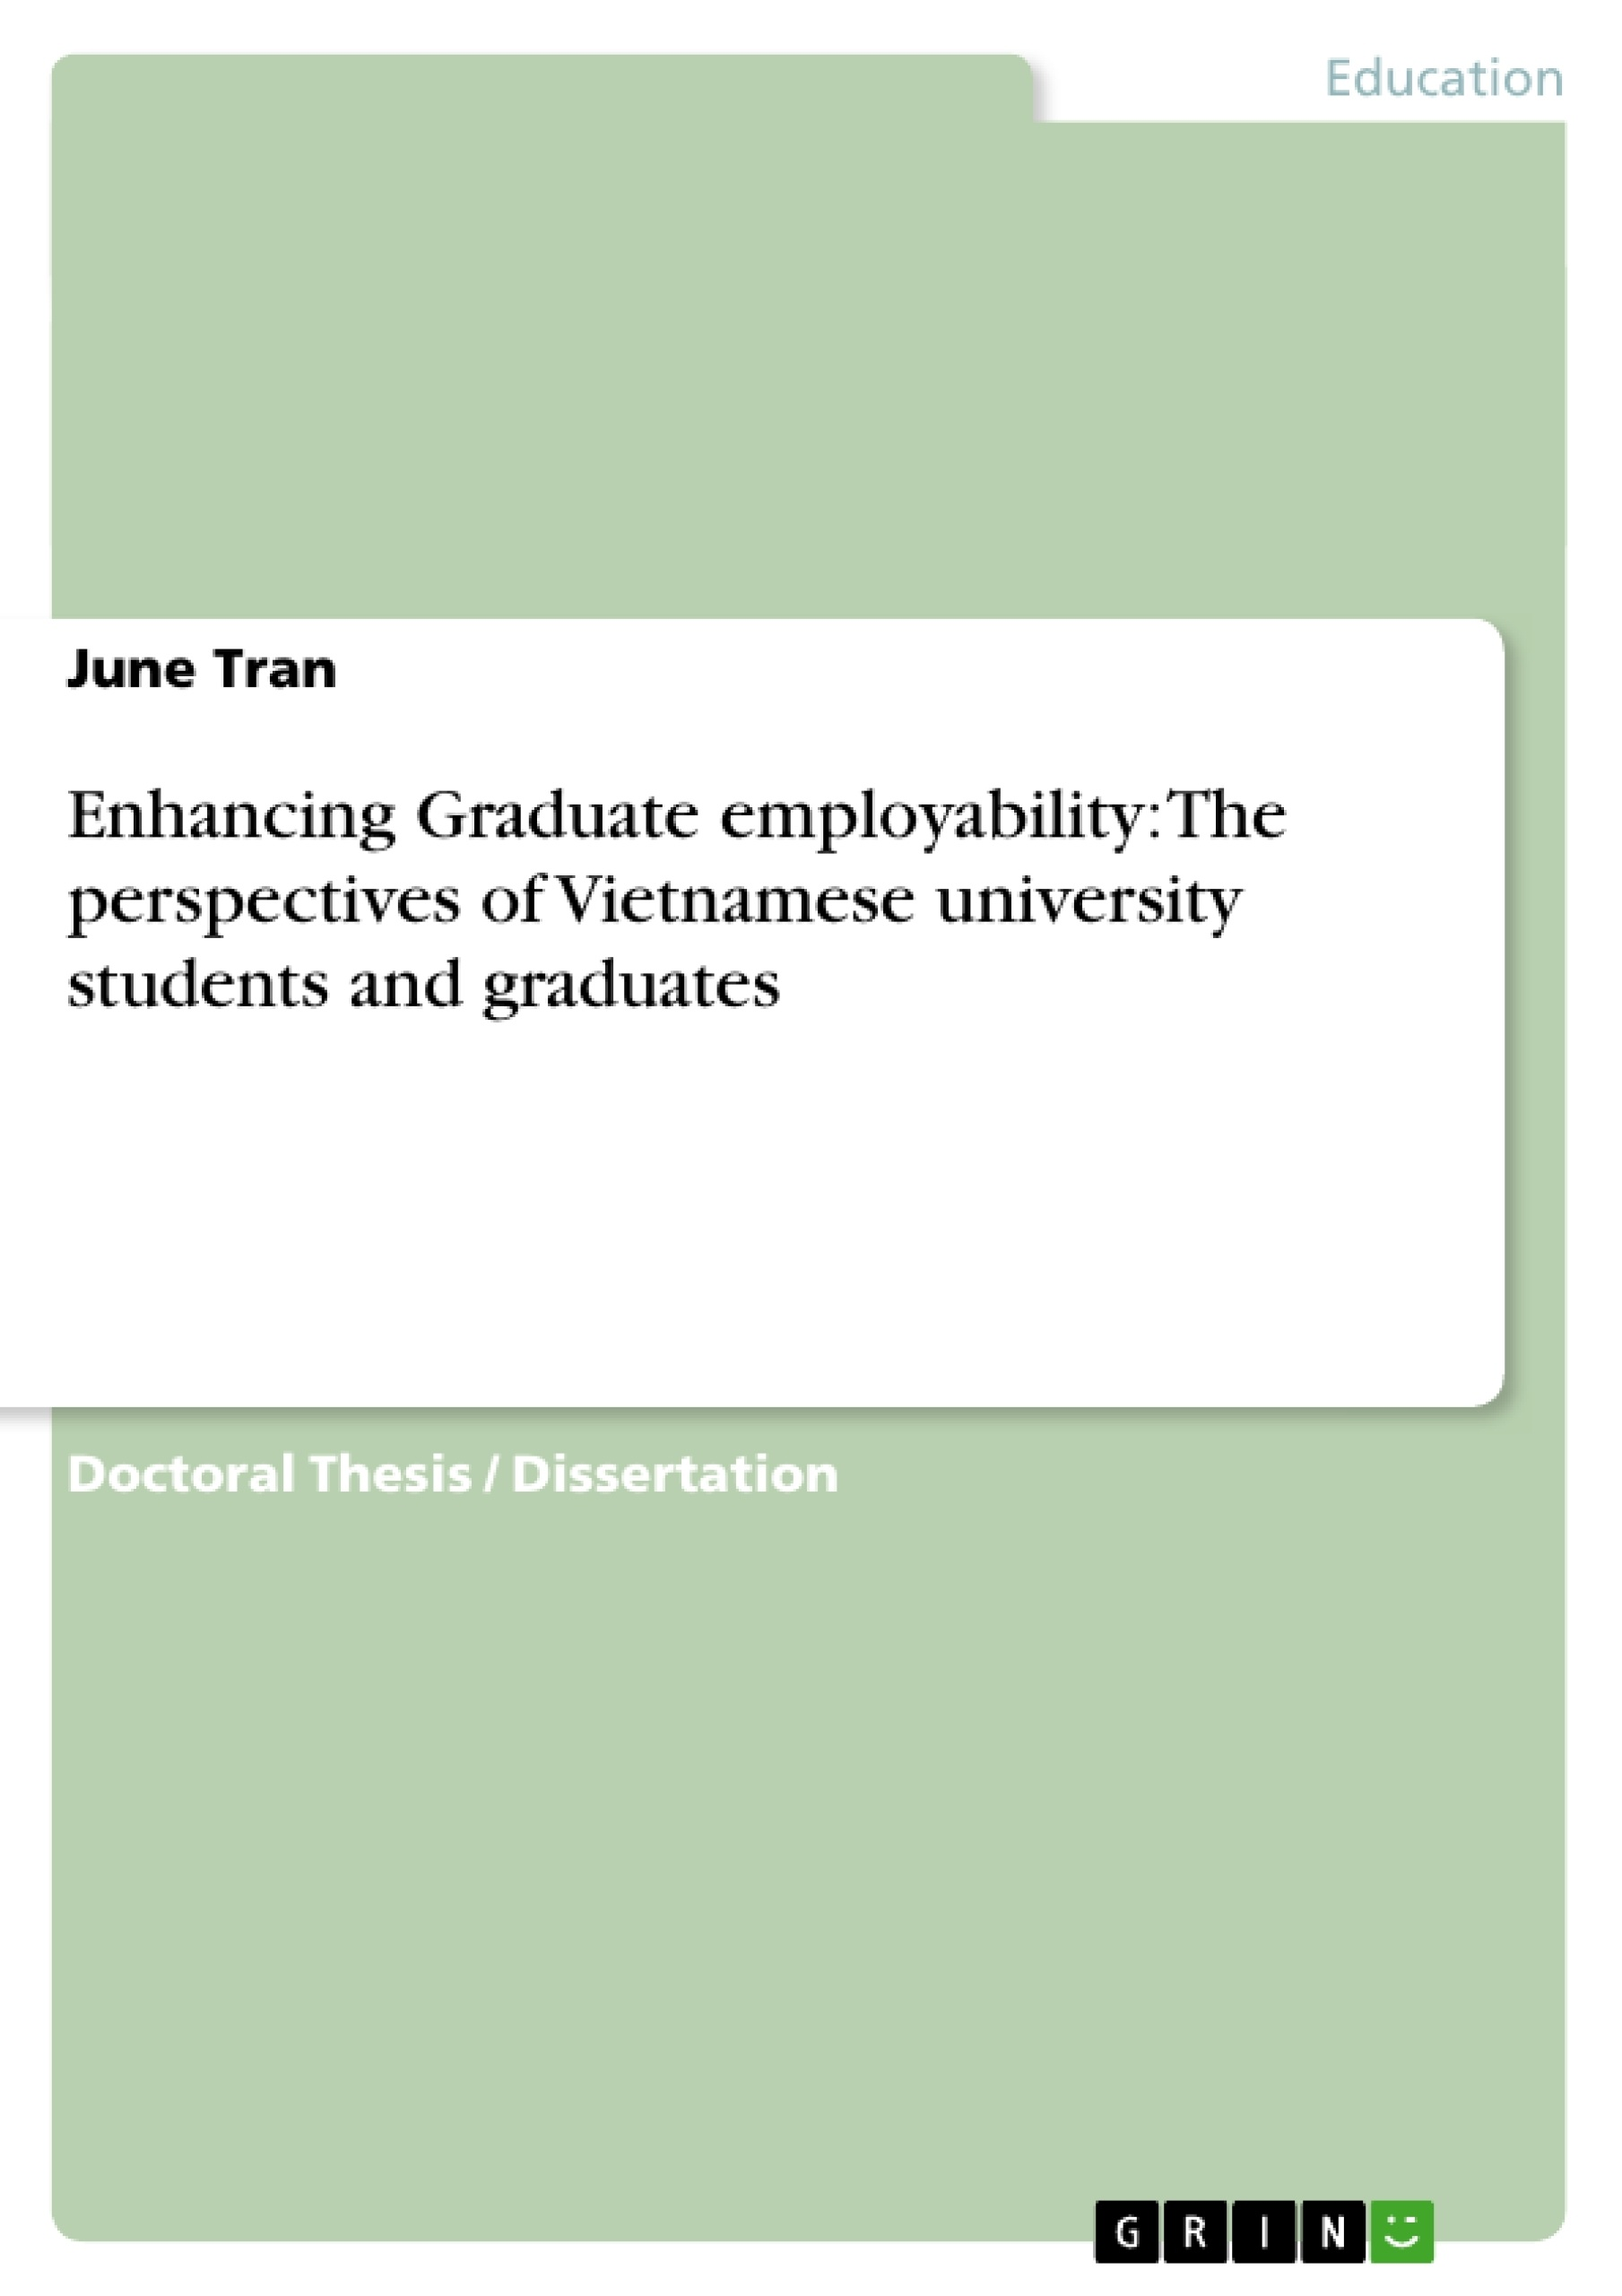 enhancing graduate employability the perspectives of viet se enhancing graduate employability the perspectives of viet se publish your master s thesis bachelor s thesis essay or term paper